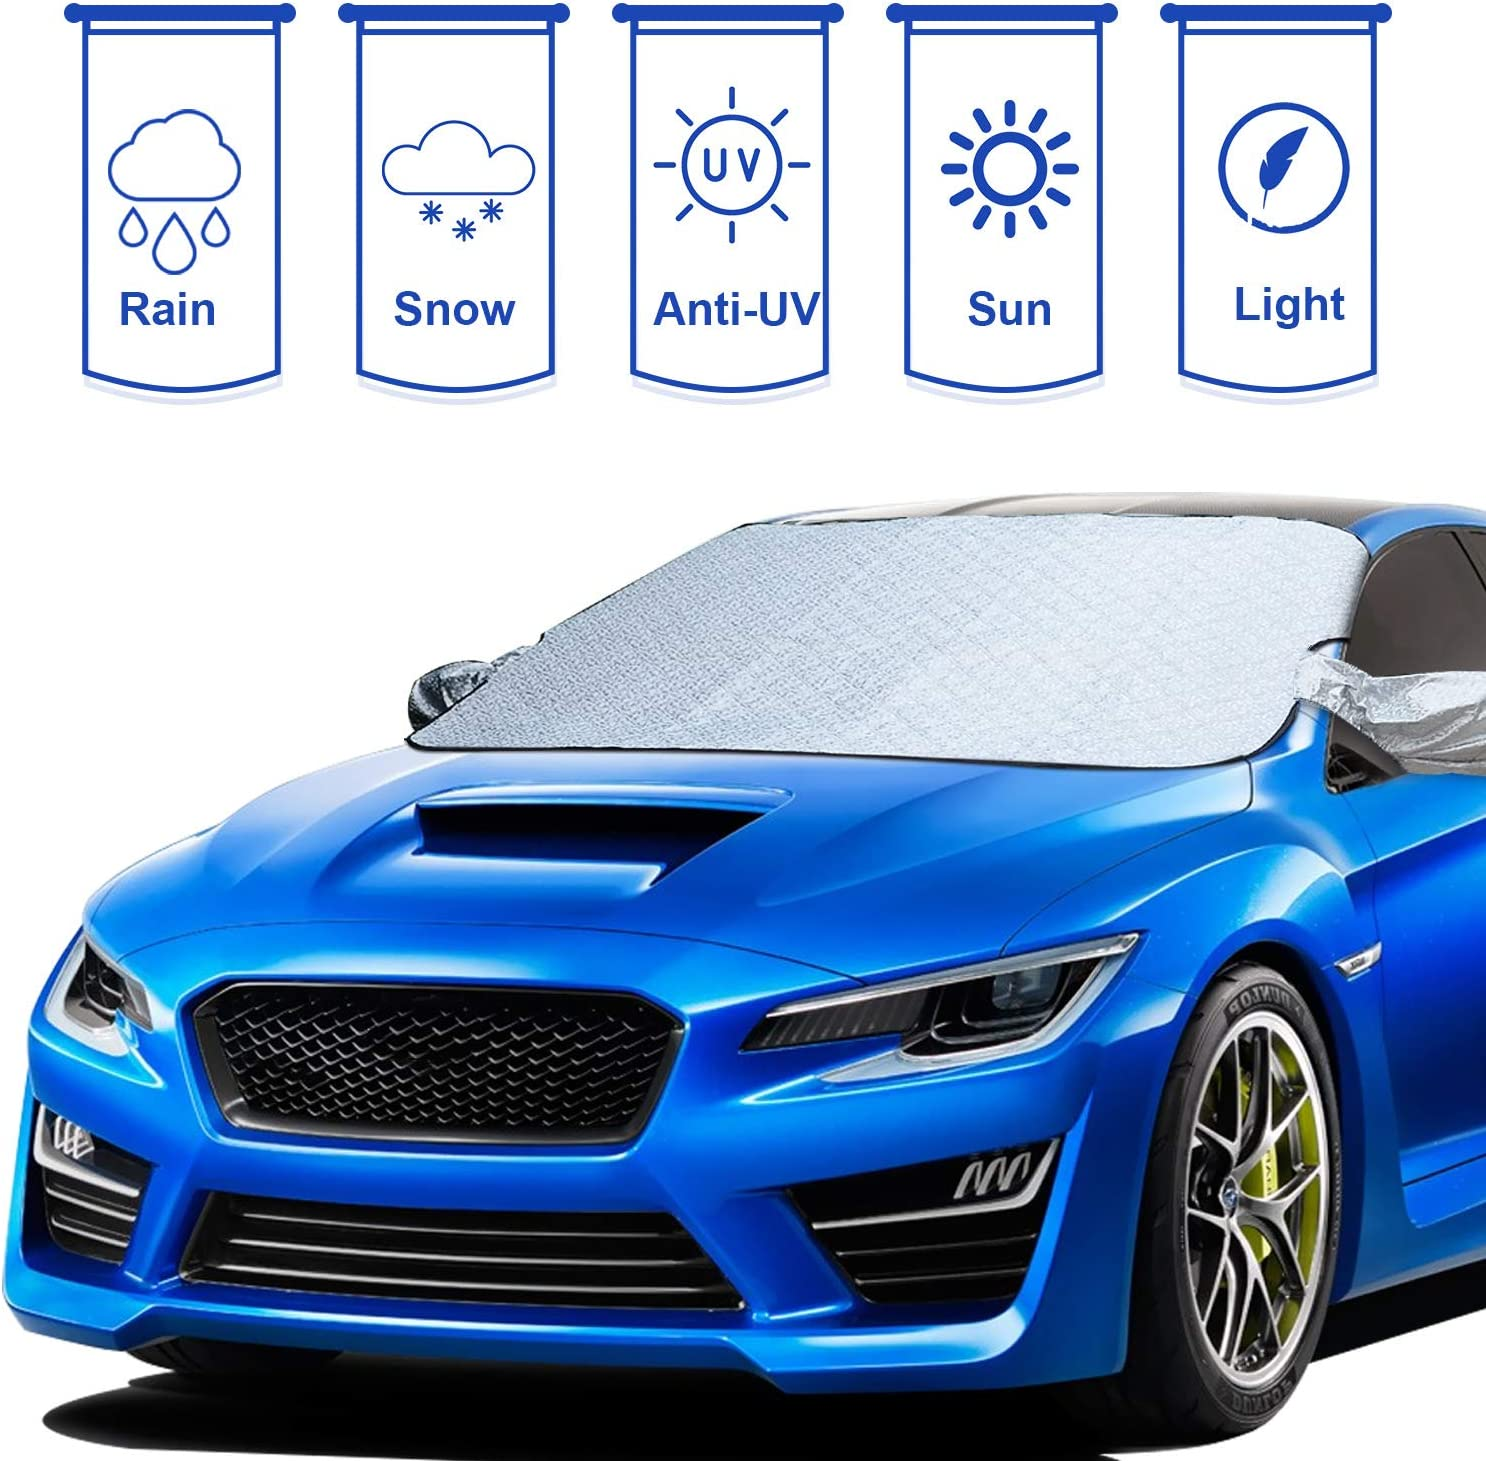 WinPower Car Windshield Sun Cover Sun Shade Protector with Mirror Cover for All Season 56.7in x 46.4in